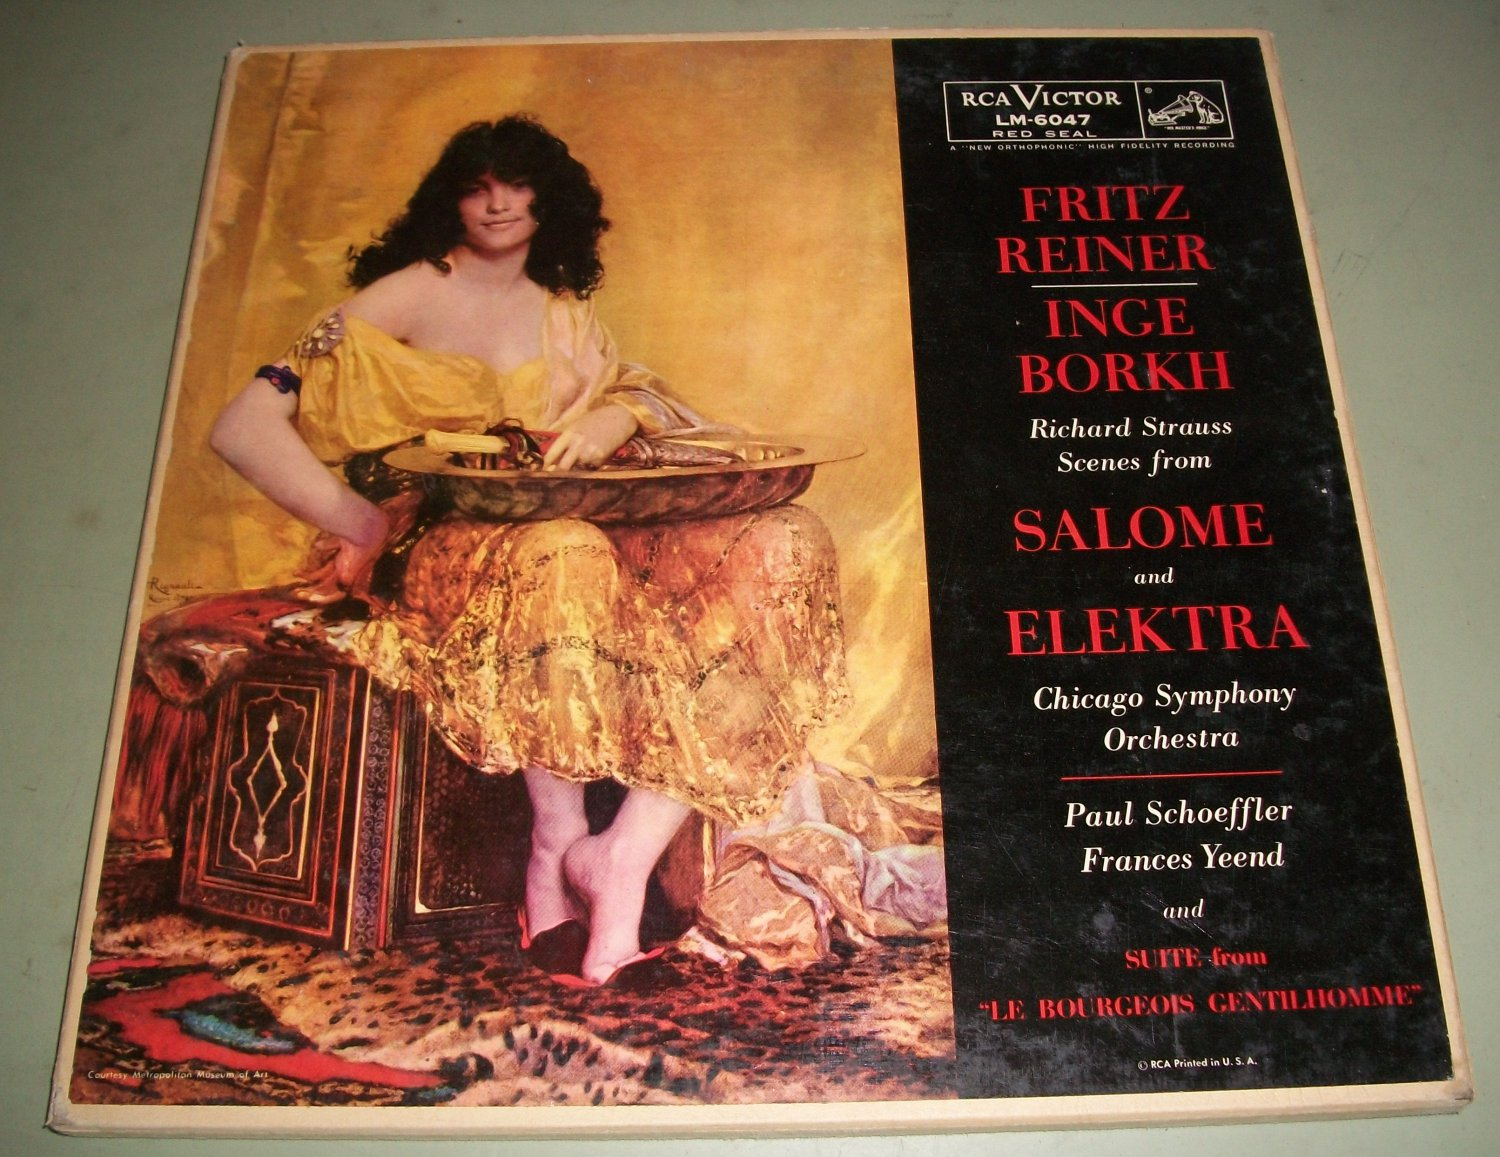 Strauss - Reiner / Borkh -  Scenes From Salome & Electra  RCA LM-6047 - 2 Records LP Box Set